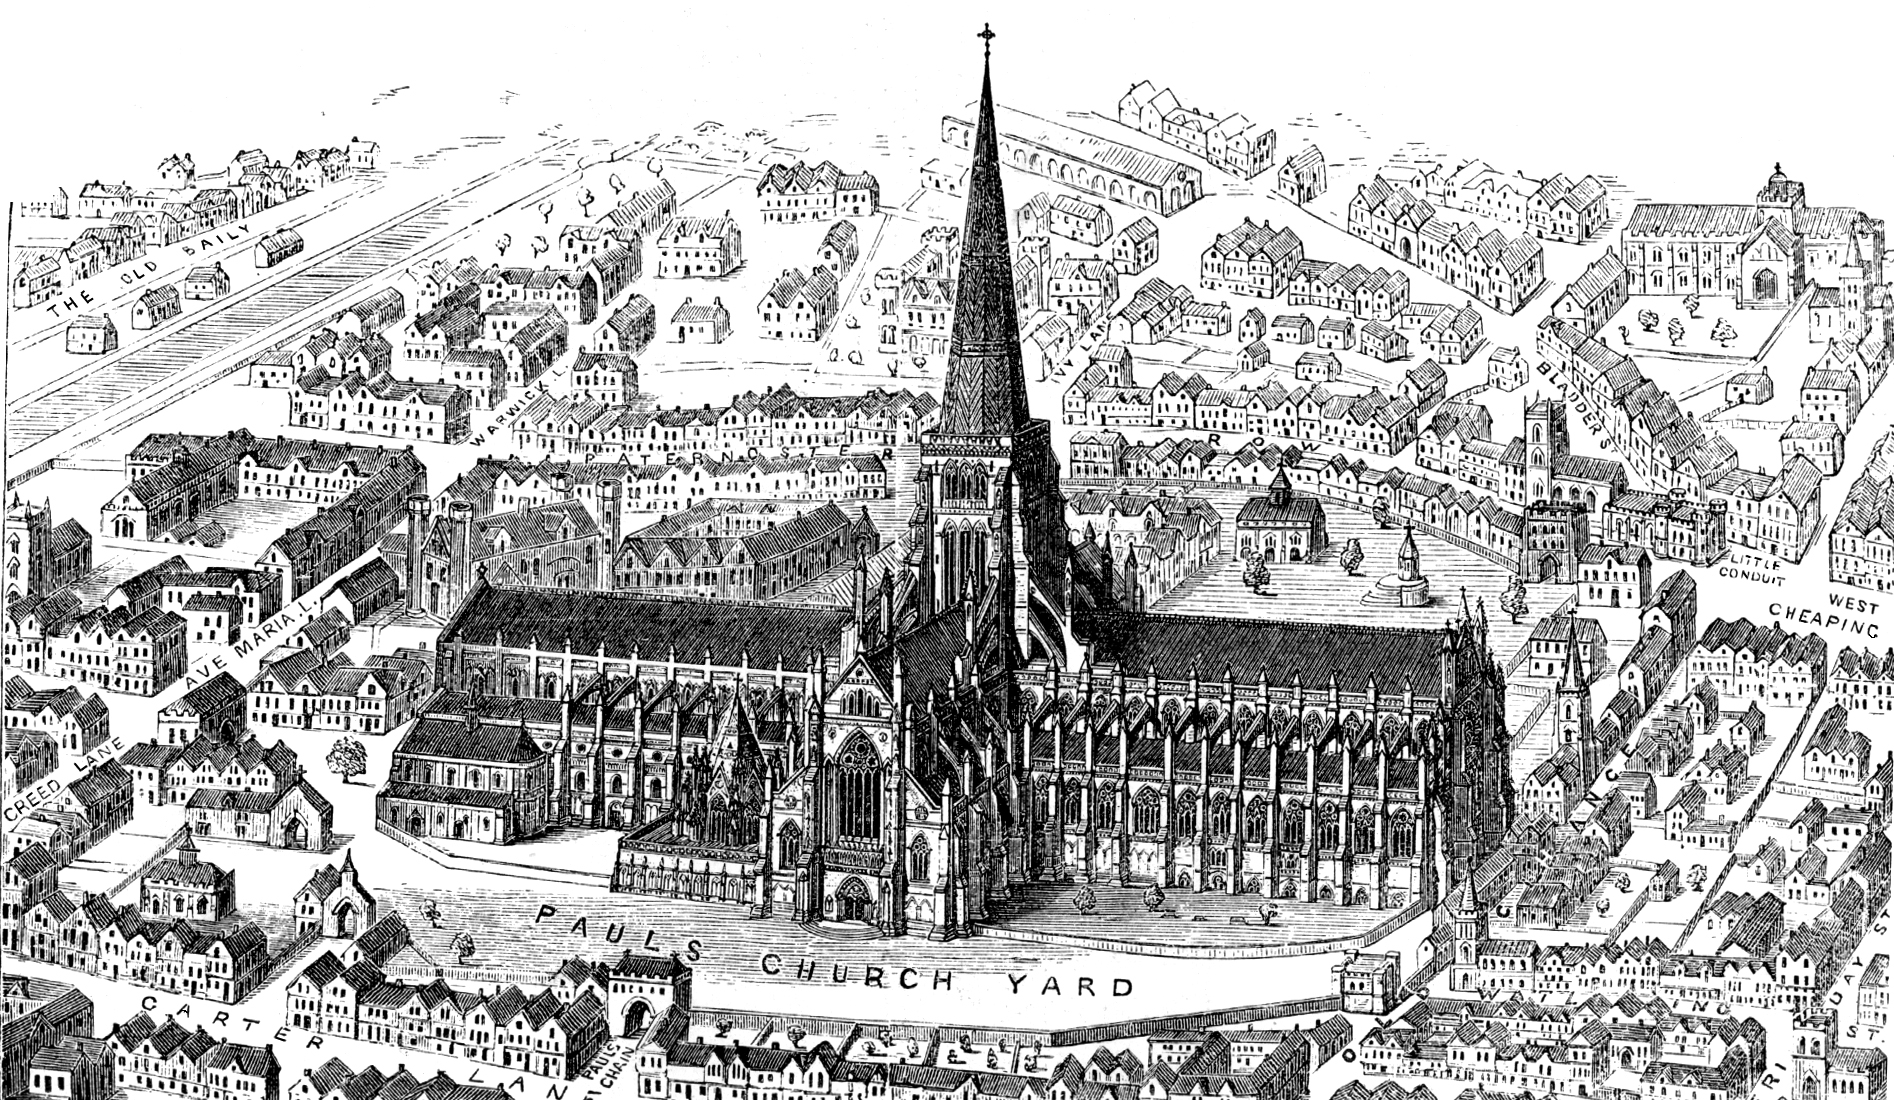 old st paul s cathedral an engraving of old st paul s cathedral seen from above the building is in a